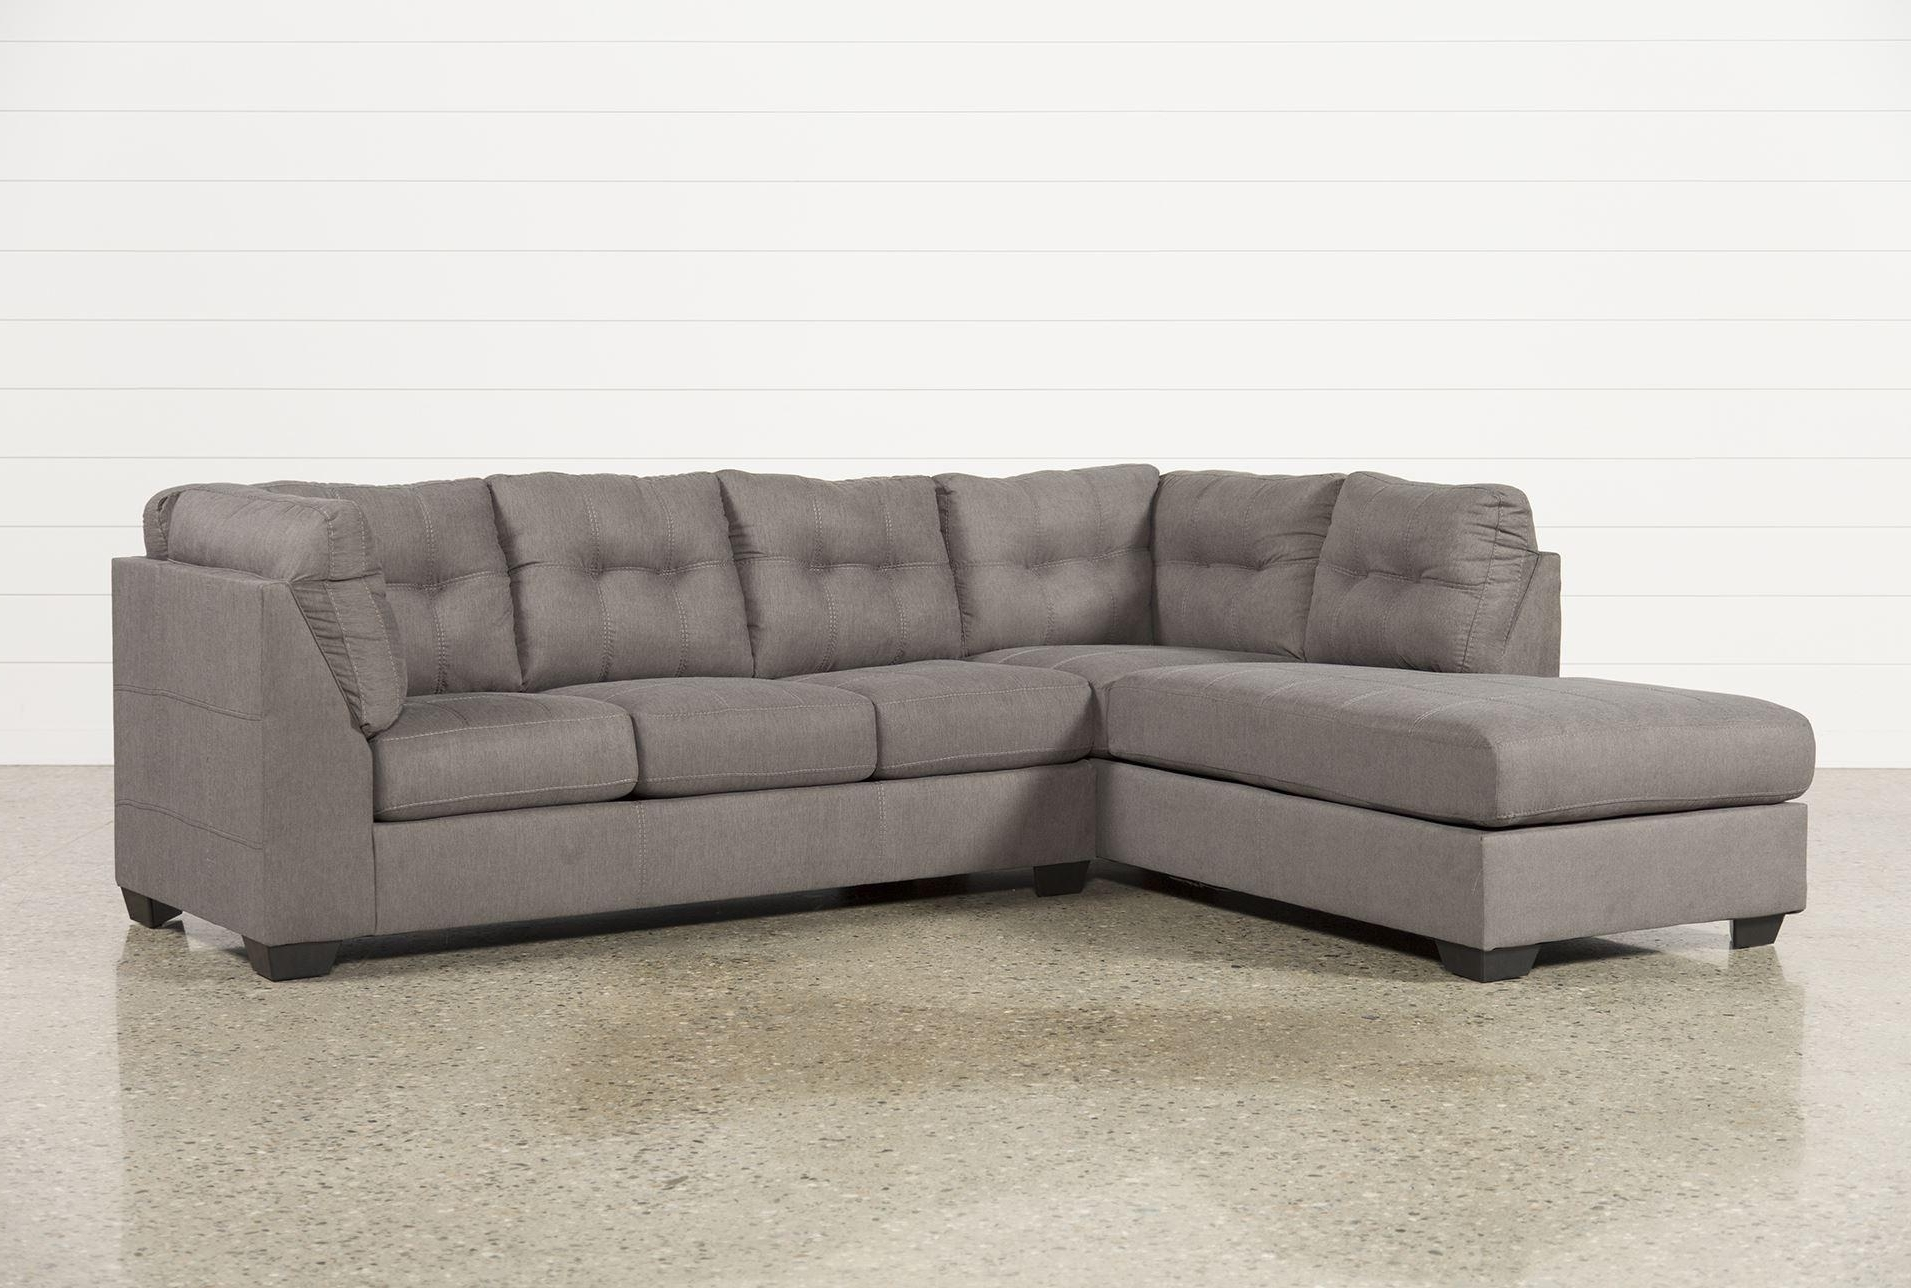 Gray Sectional Sofa With Chaise Lounge (View 6 of 15)